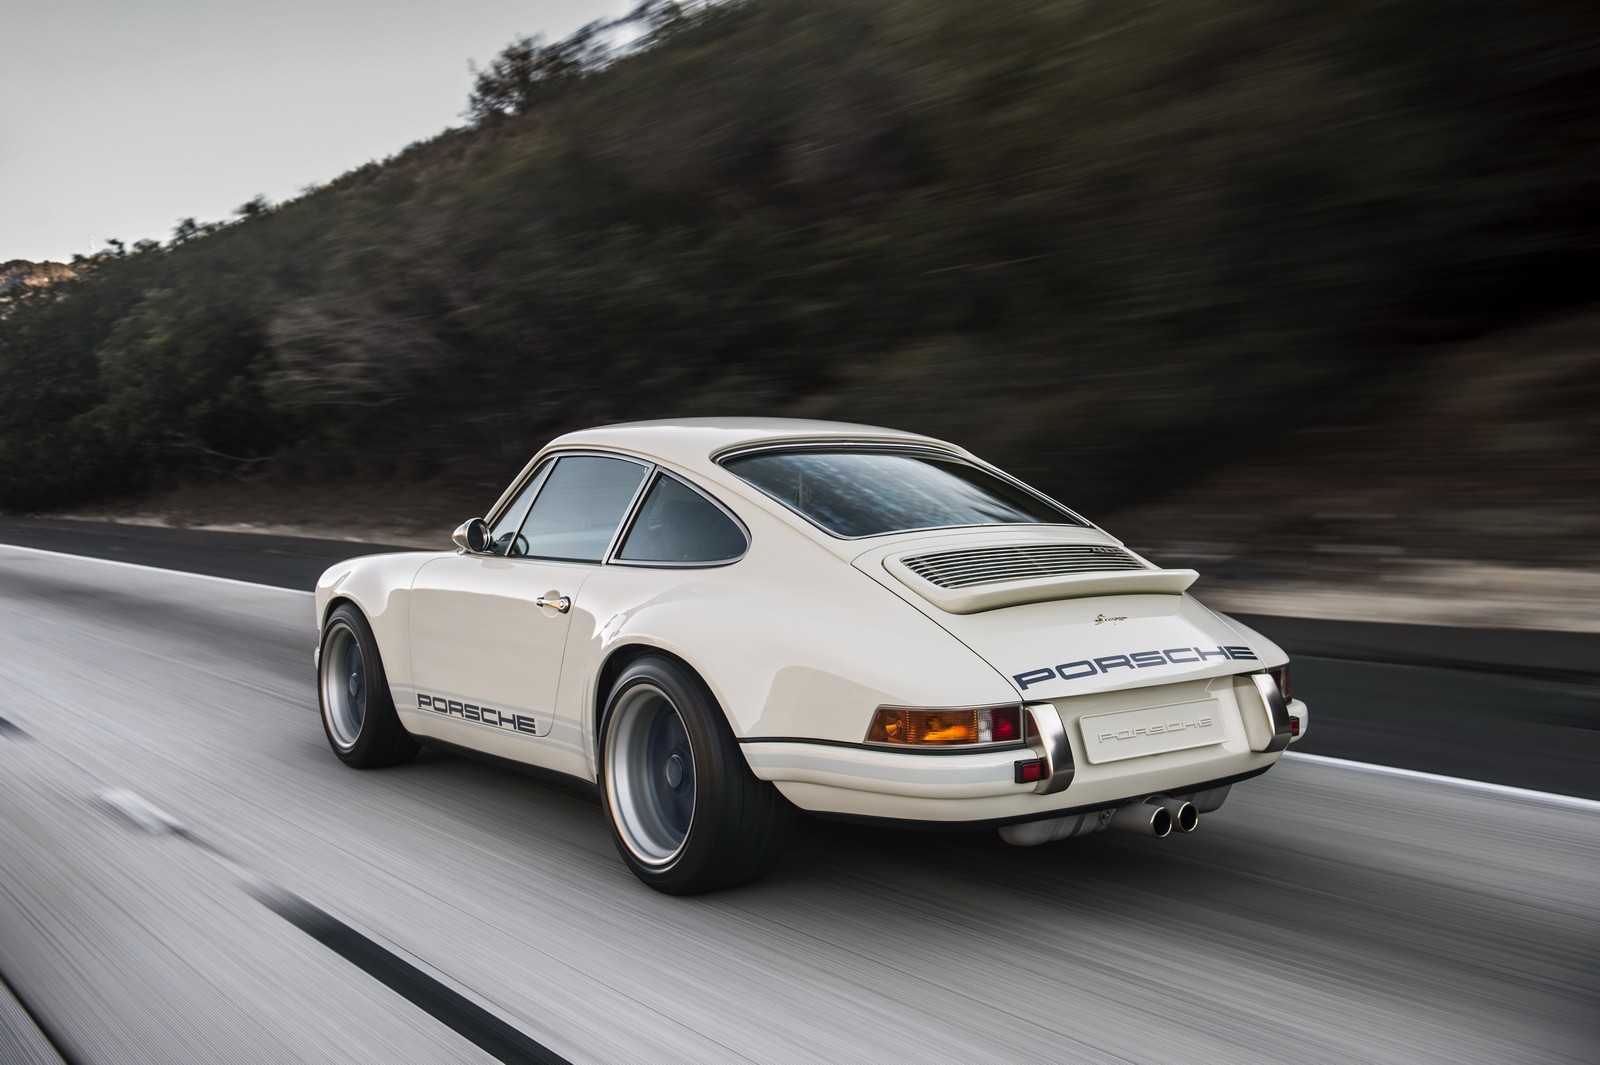 Porsche 911 Reimagined By Singer To Be Showcased At 2016